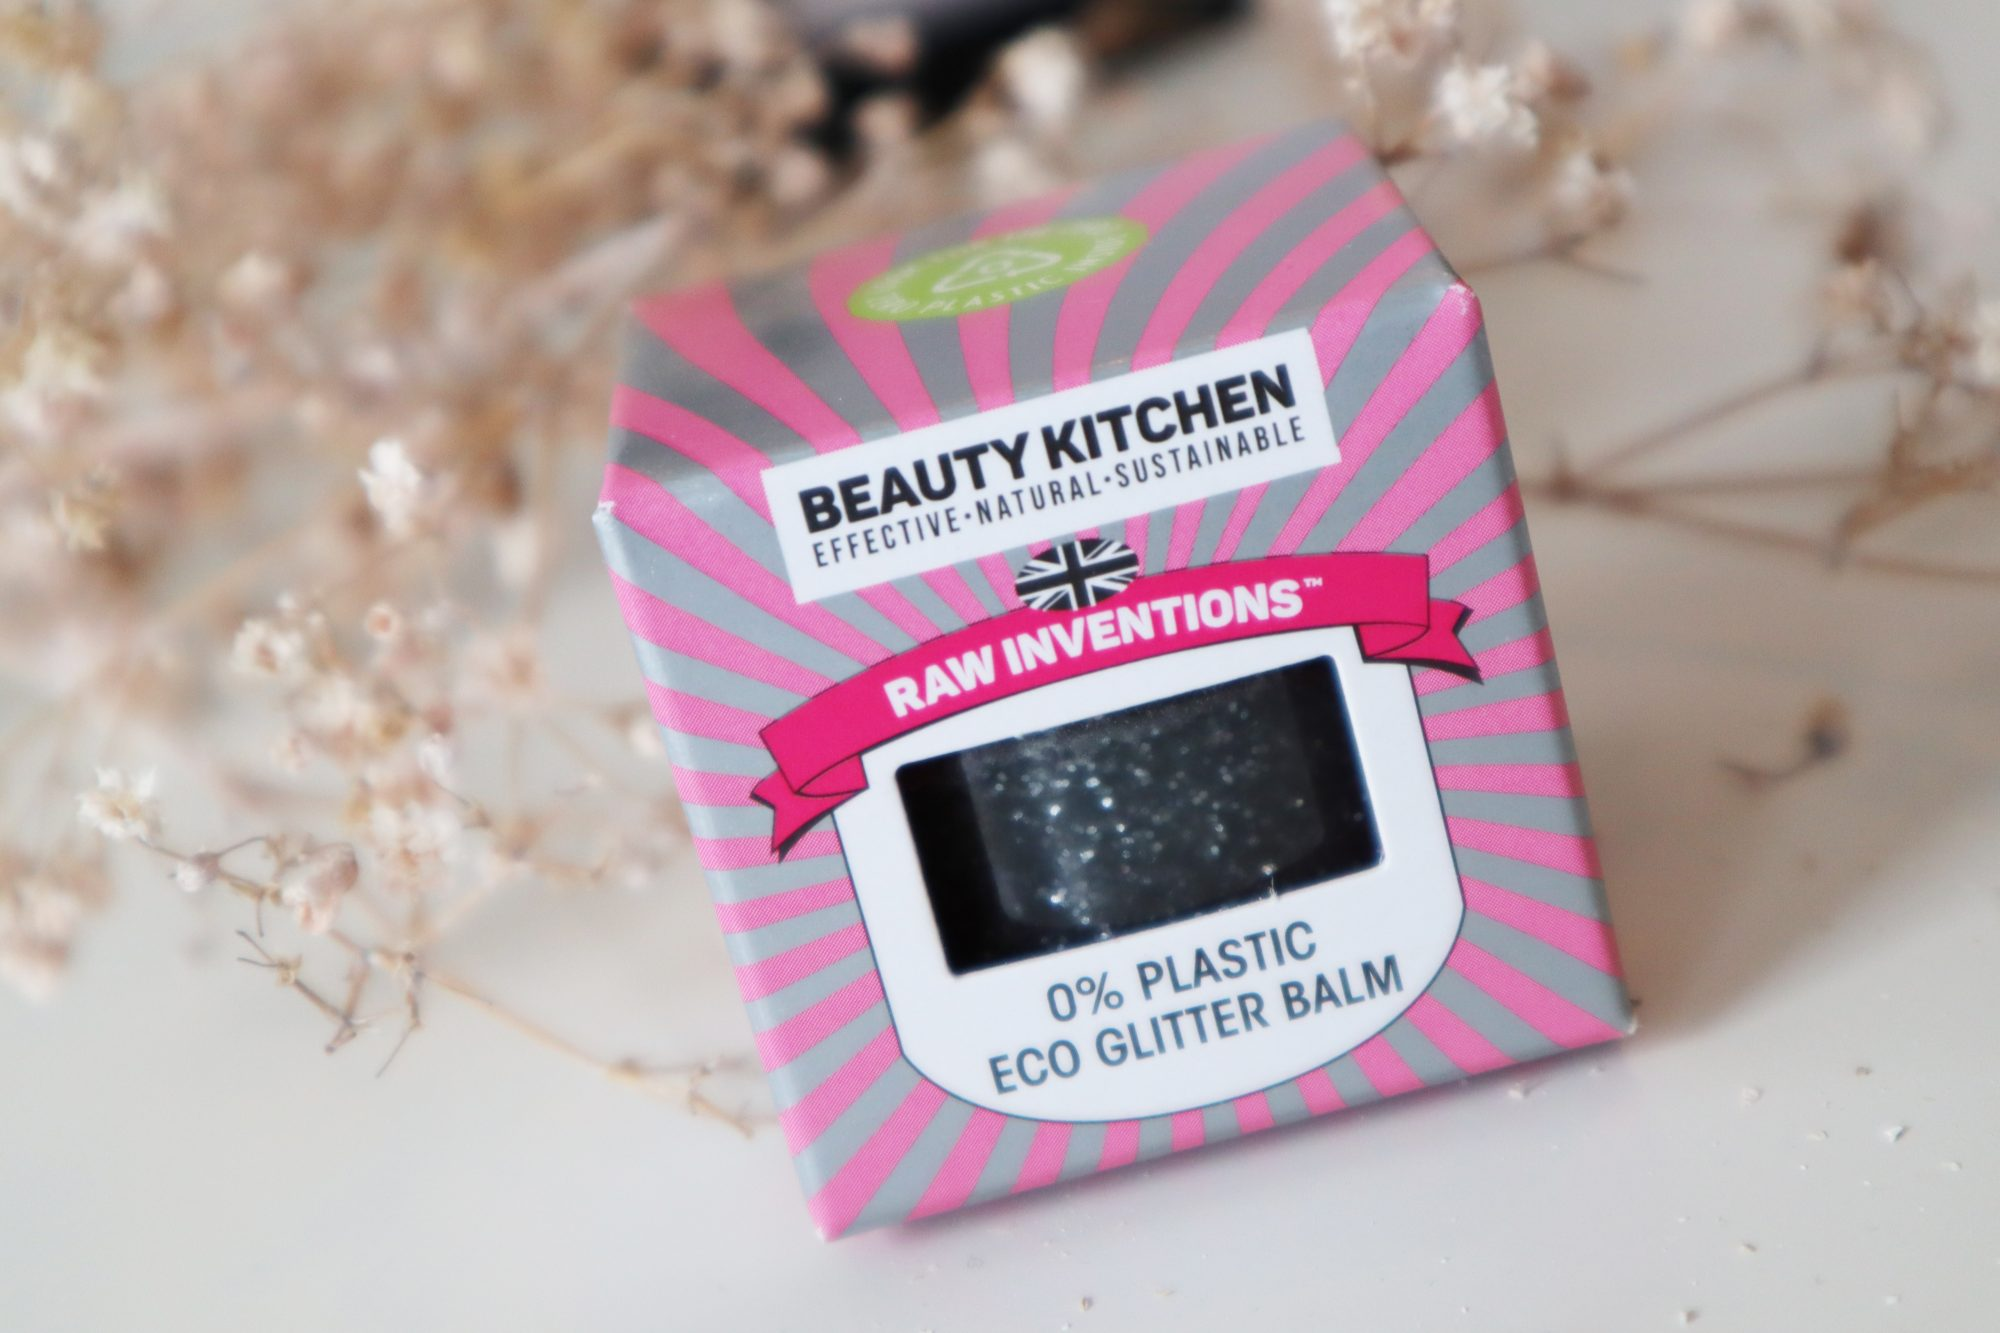 Beauty Kitchen 0% Plastic Eco Glitter Balm